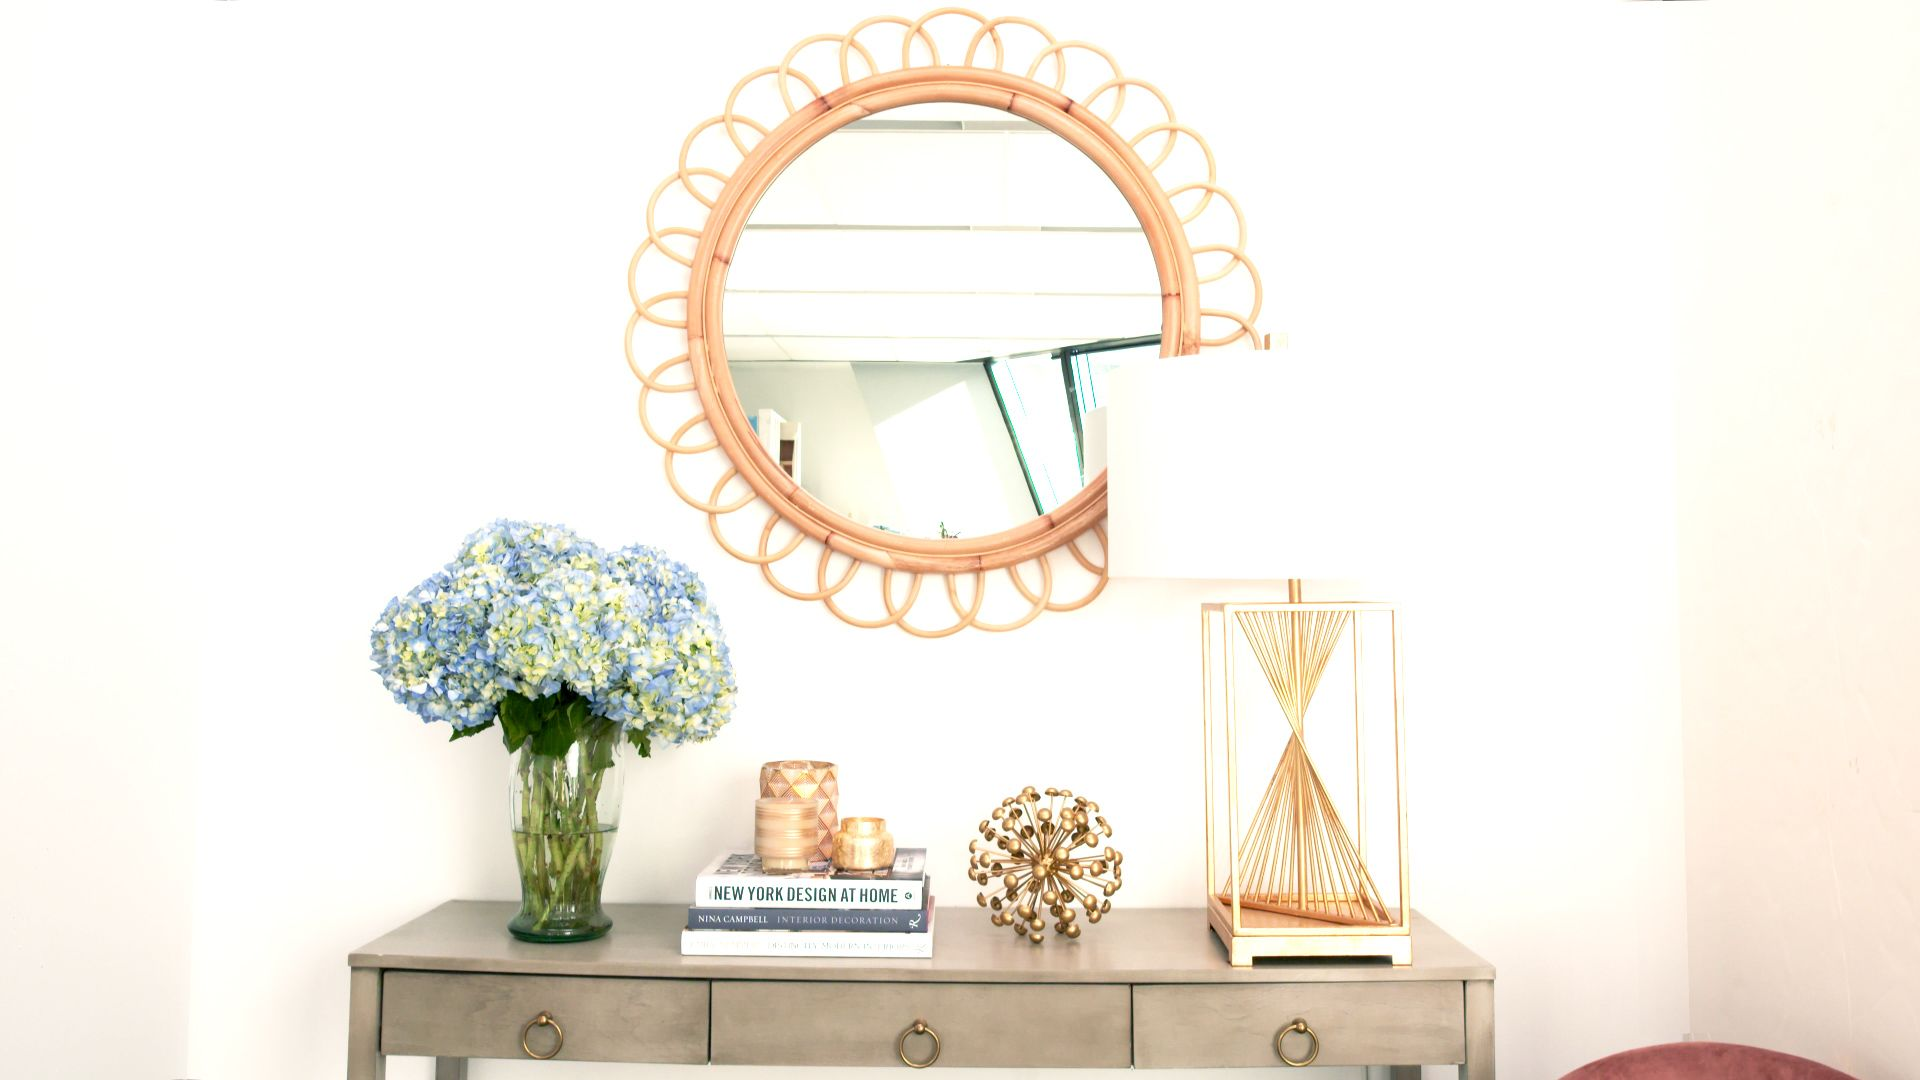 How To Hang A Mirror The Best Way To Hang A Mirror On Drywall,Different Types Of Flower Arrangement With Pictures And Names